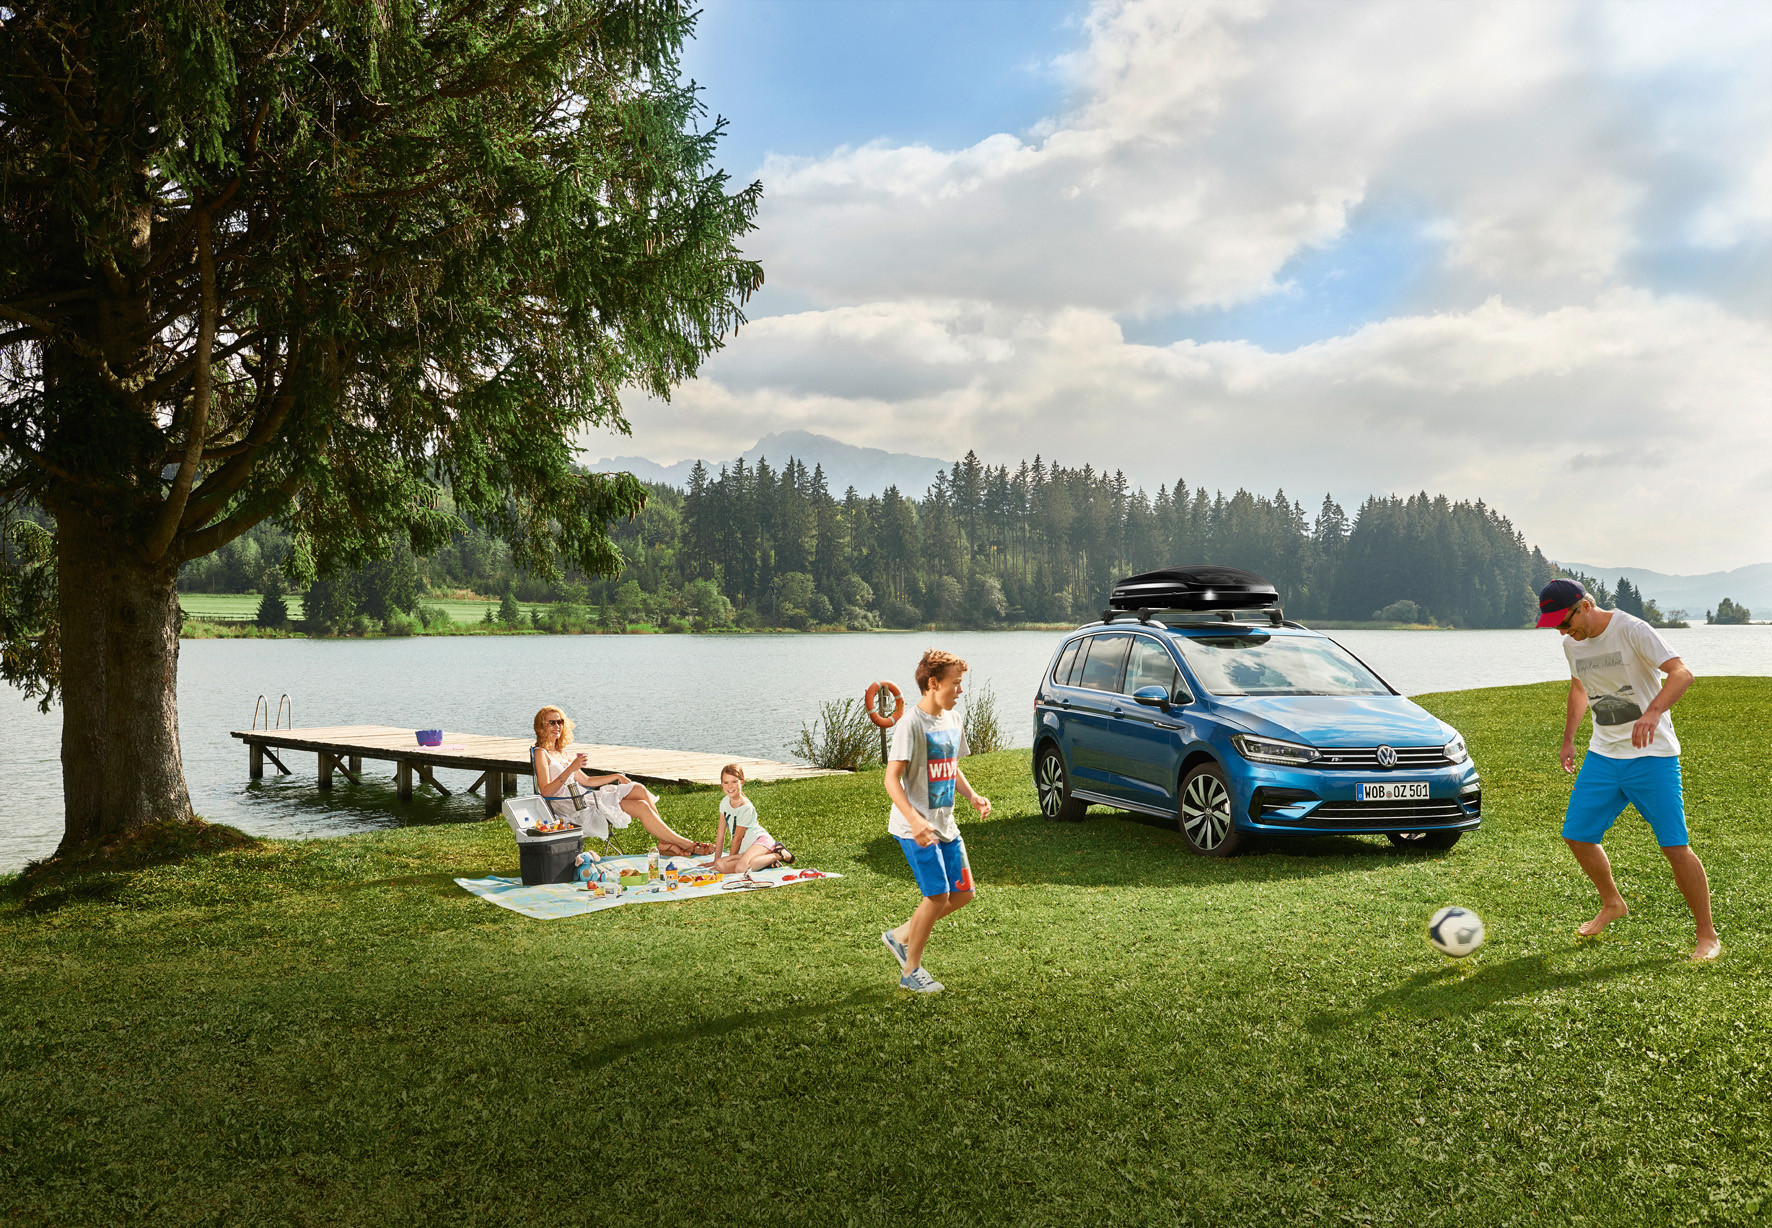 Bright blue Volkswagen Touran parked on grass by a lake with family playing football